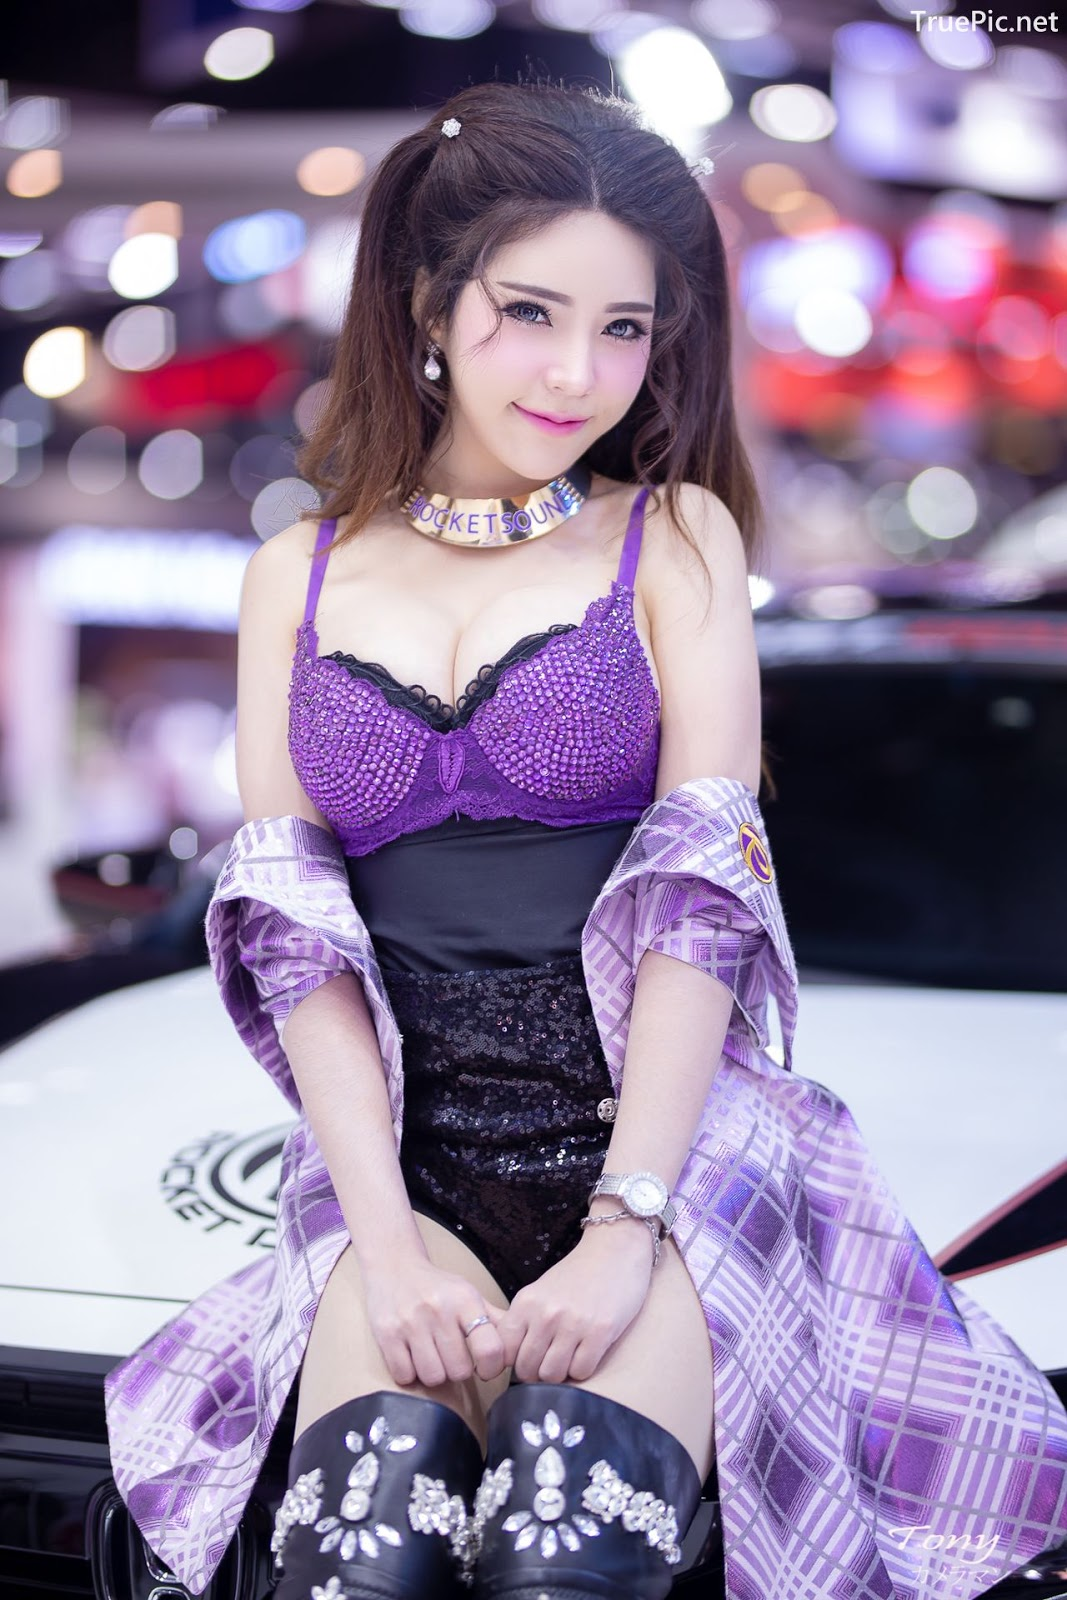 Image-Thailand-Hot-Model-Thai-Racing-Girl-At-Motor-Show-2019-TruePic.net- Picture-4